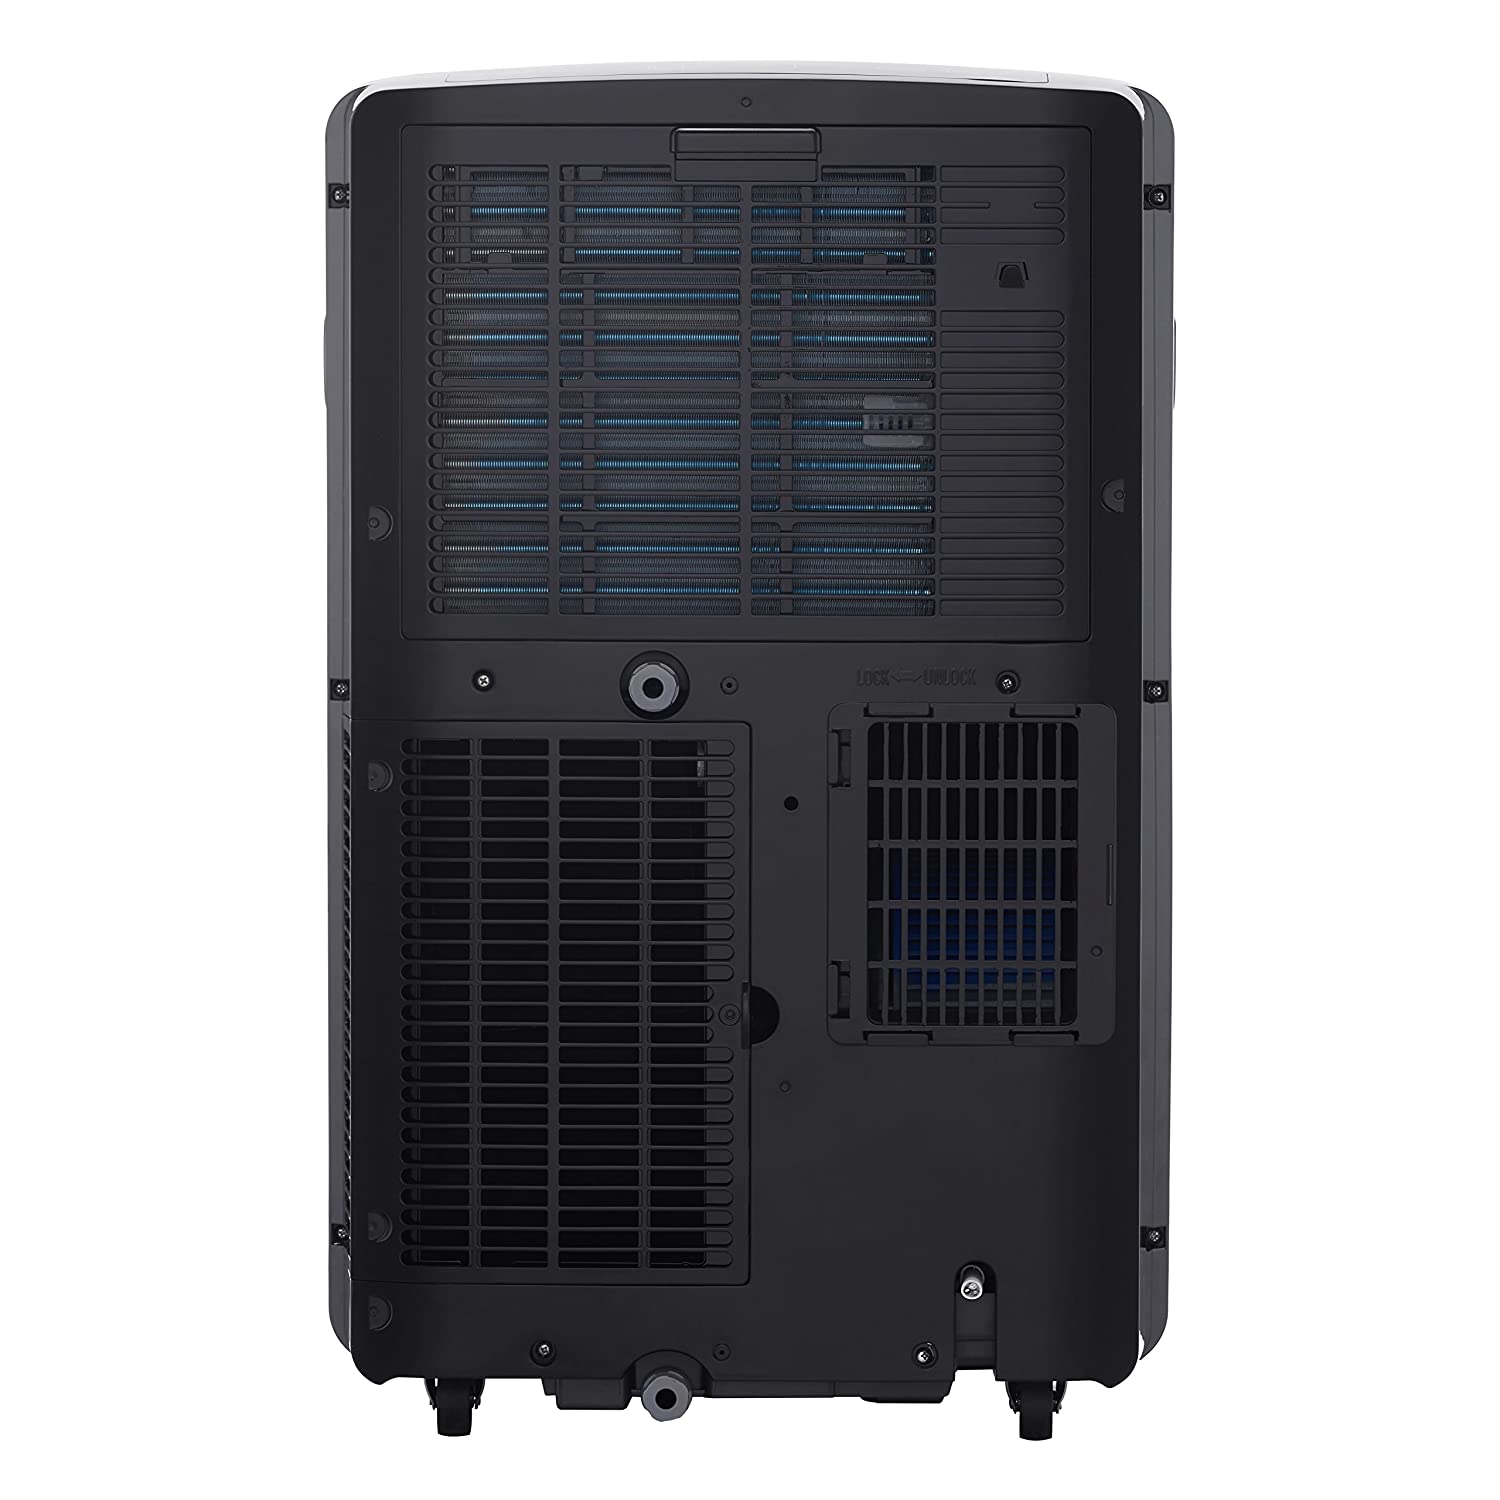 LG LP1217GSR 115V Portable Air Conditioner with Remote Control in Graphite  Gray for Rooms up to 300-Sq  Ft